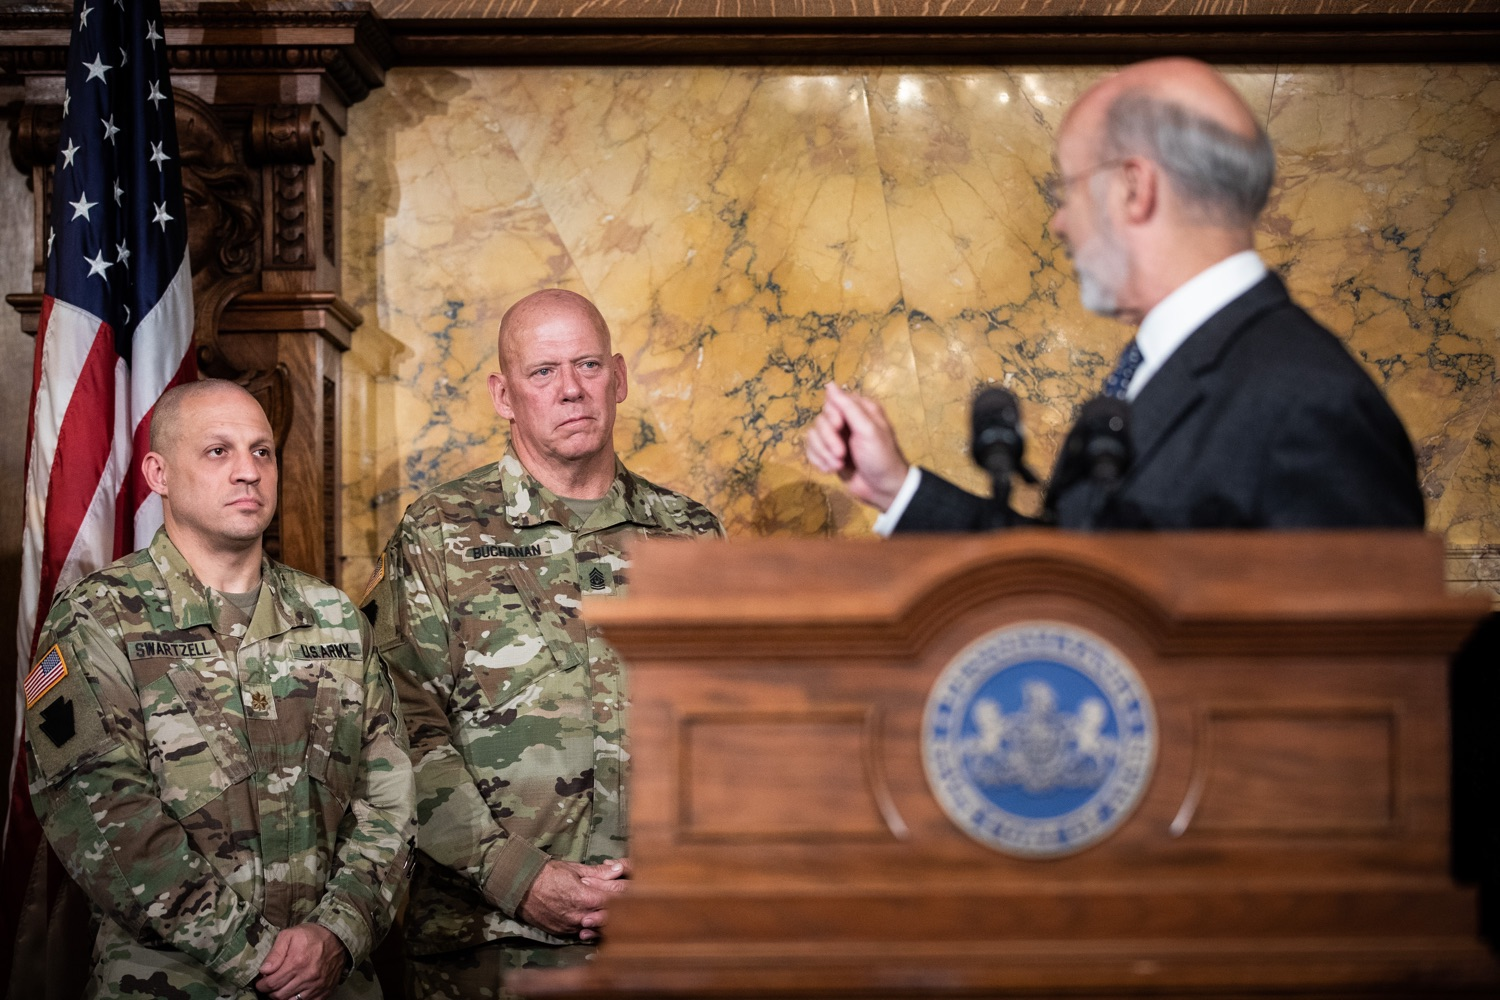 "<a href=""http://filesource.abacast.com/commonwealthofpa/photo/17423_gov_trip_recap_dz_009.jpg"" target=""_blank"">⇣ Download Photo<br></a>Harrisburg, PA  Governor Tom Wolf speaking about his recent visit to Lithuania and Poland.  Governor Tom Wolf today highlighted the second half of his trip abroad, including visiting with more than 500 PA National Guard (PNG) troops in Poland, and honoring the Tree of Life synagogue victims at the Auschwitz-Birkenau Memorial. Tuesday, September 17, 2019"